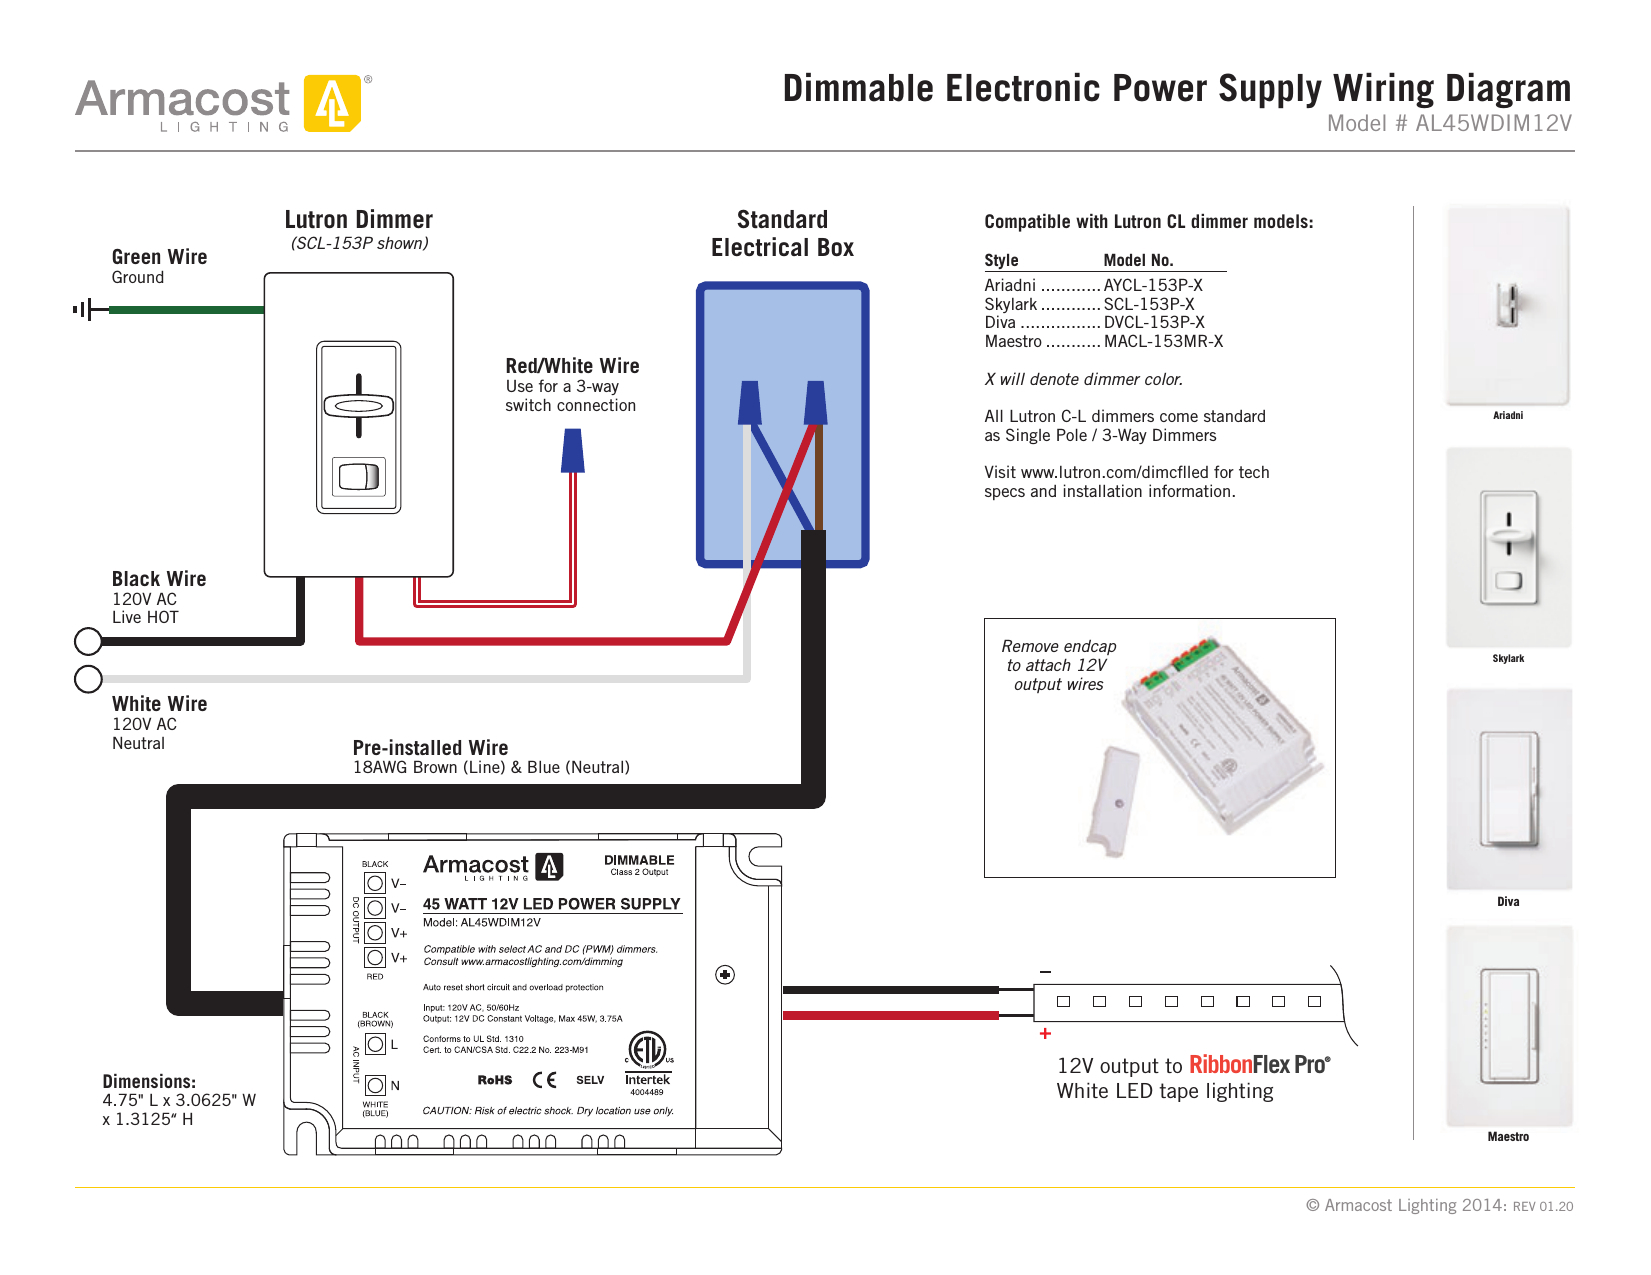 lutron 3 way led dimmer wiring diagram Download-lutron diva cl wiring diagram Collection lutron skylark dimmer wiring diagram Unique Lutron Dimmer Switch 15-n